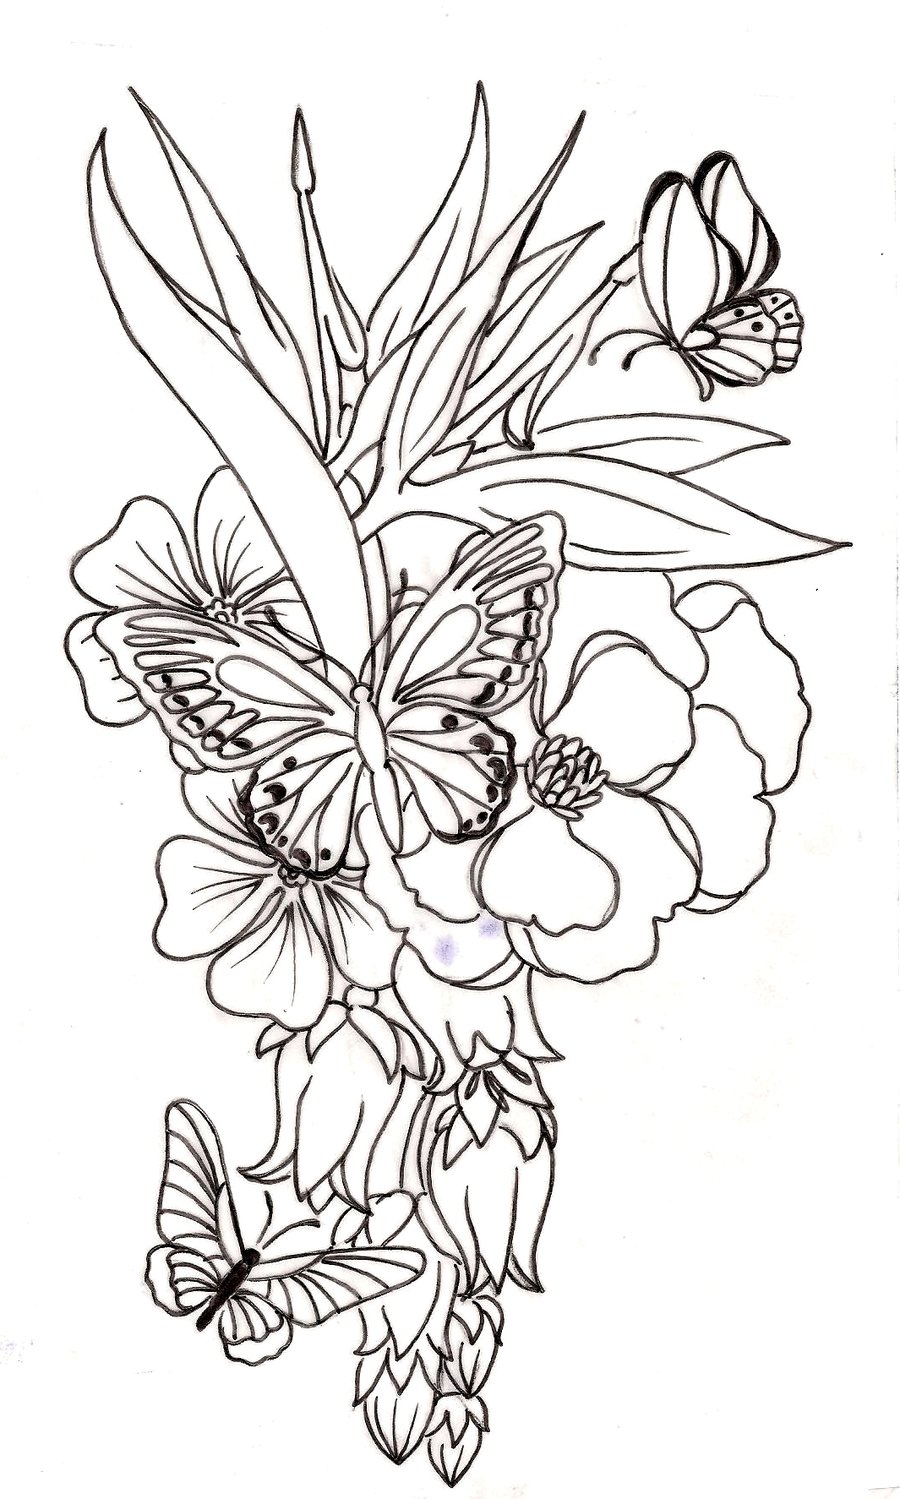 Tattoo Flower Drawing At Getdrawings Com Free For Personal Use